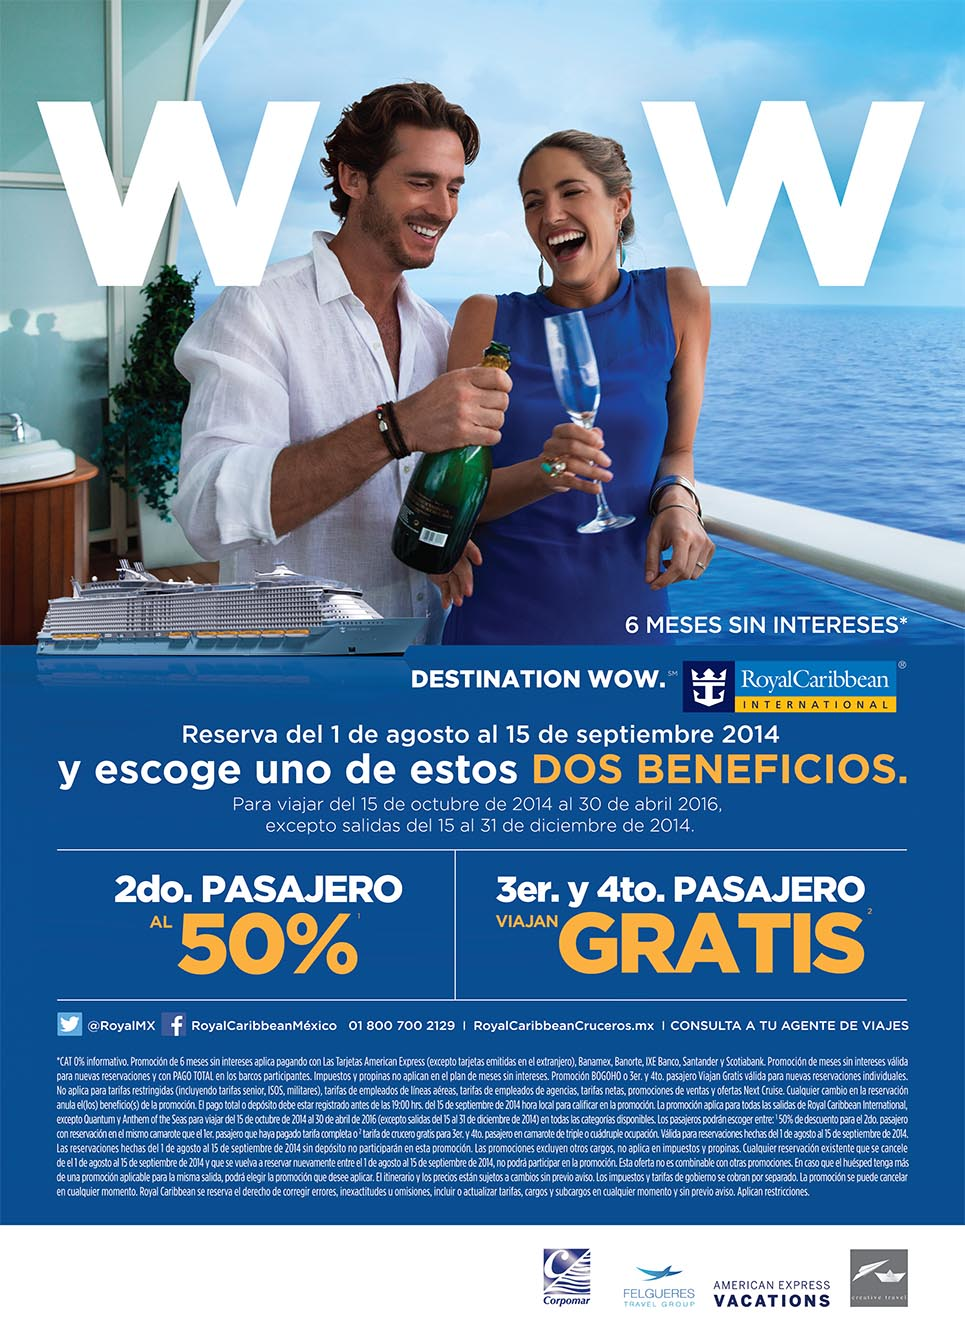 Royal Caribbean Destination wow